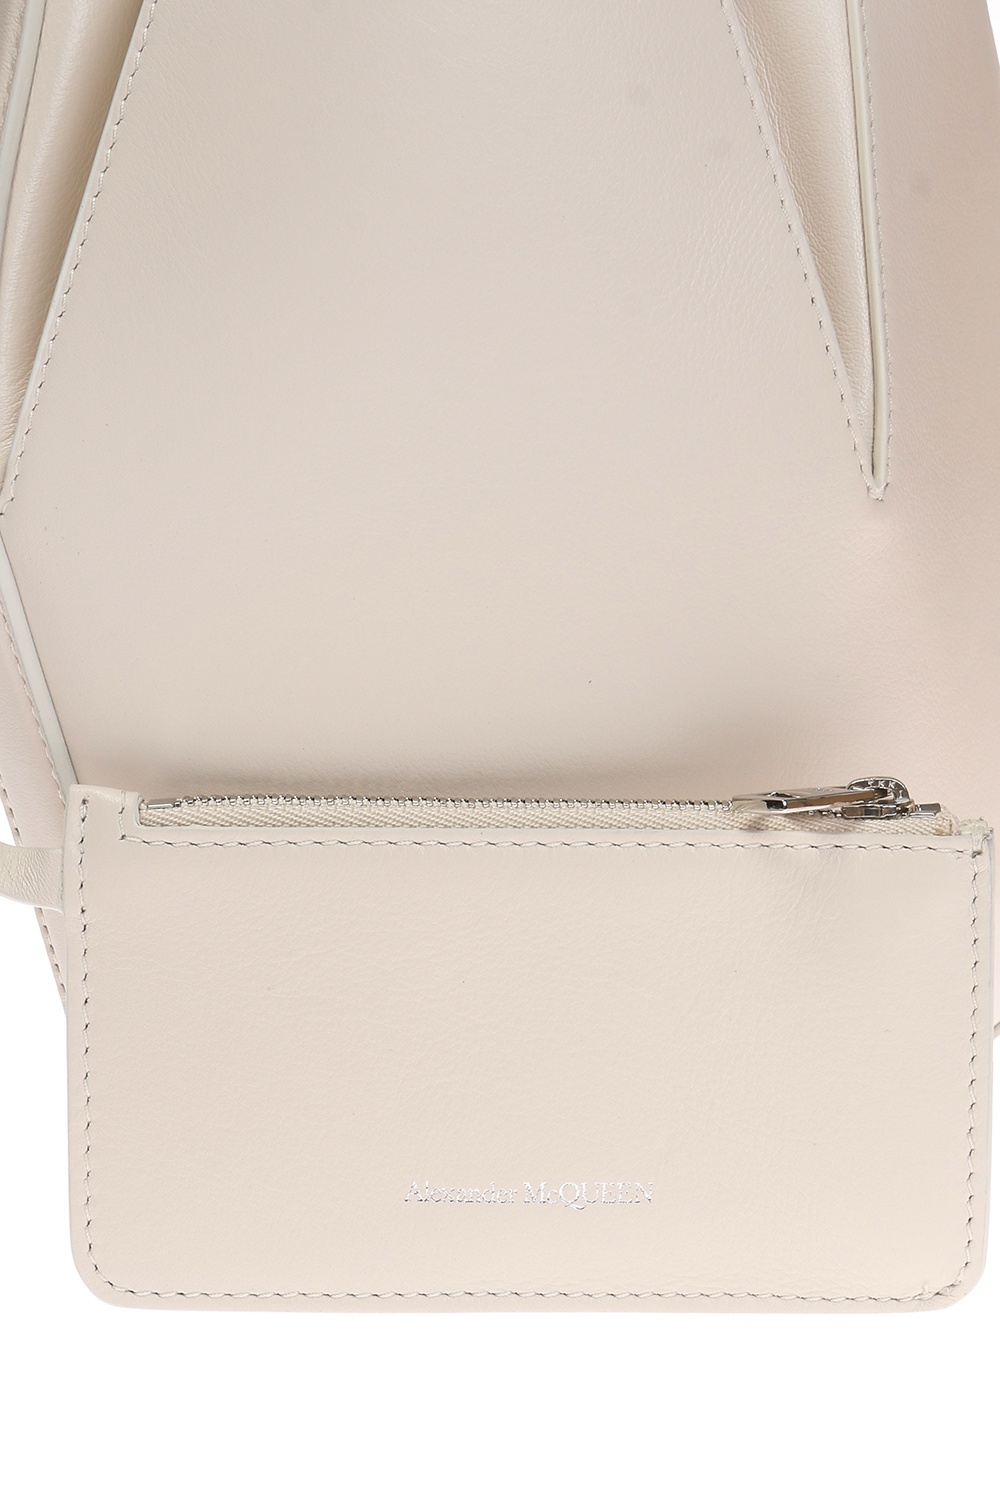 Alexander McQueen Shoulder bag with sachet